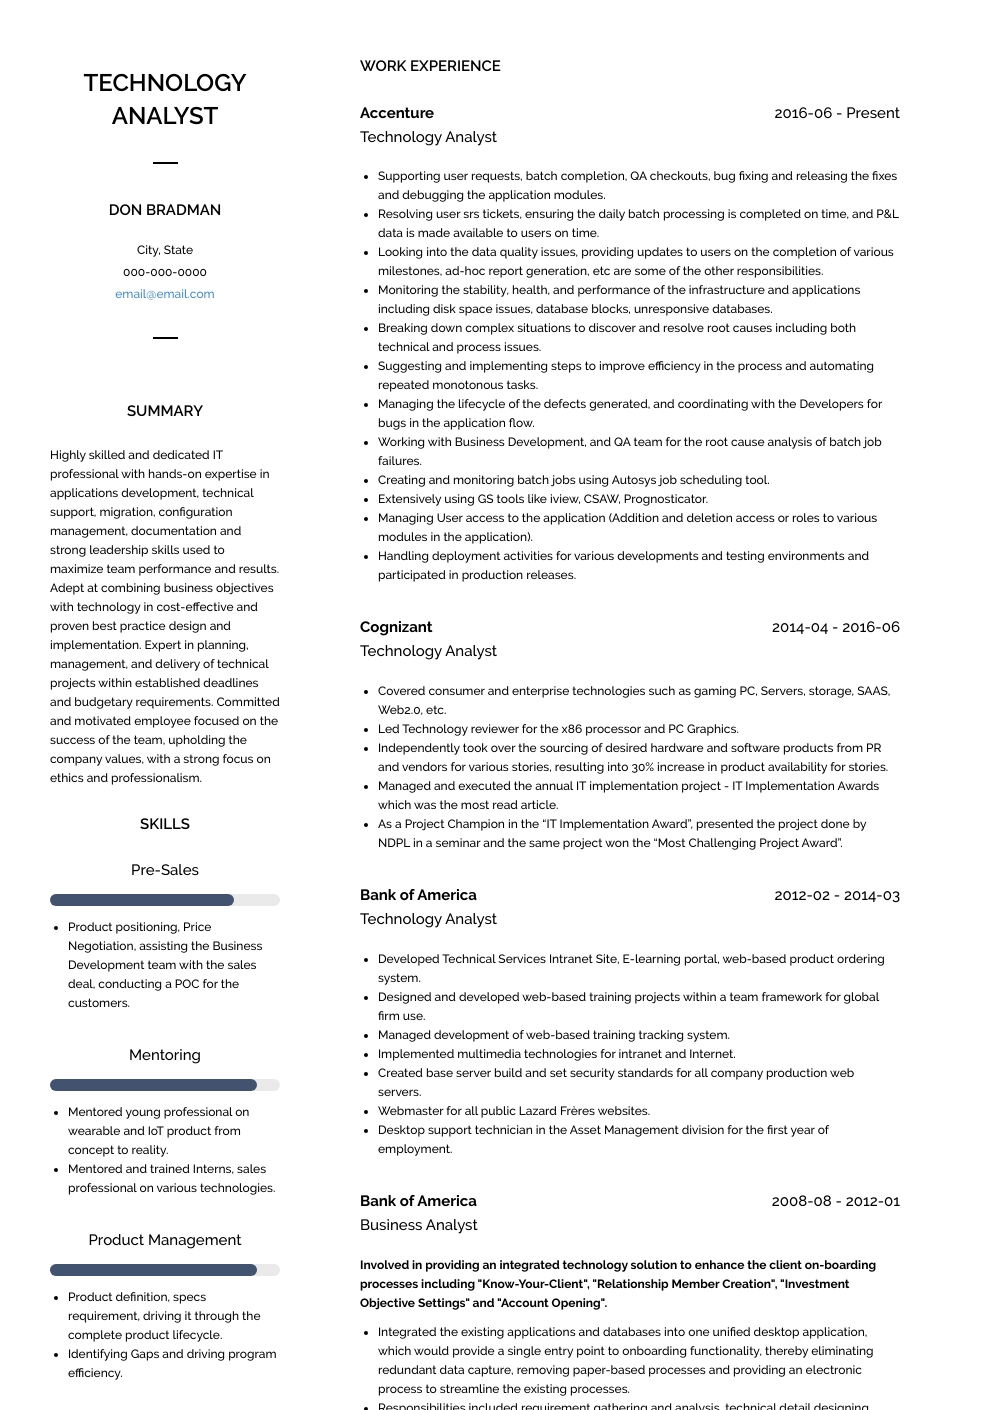 Technology Analyst Resume Sample and Template